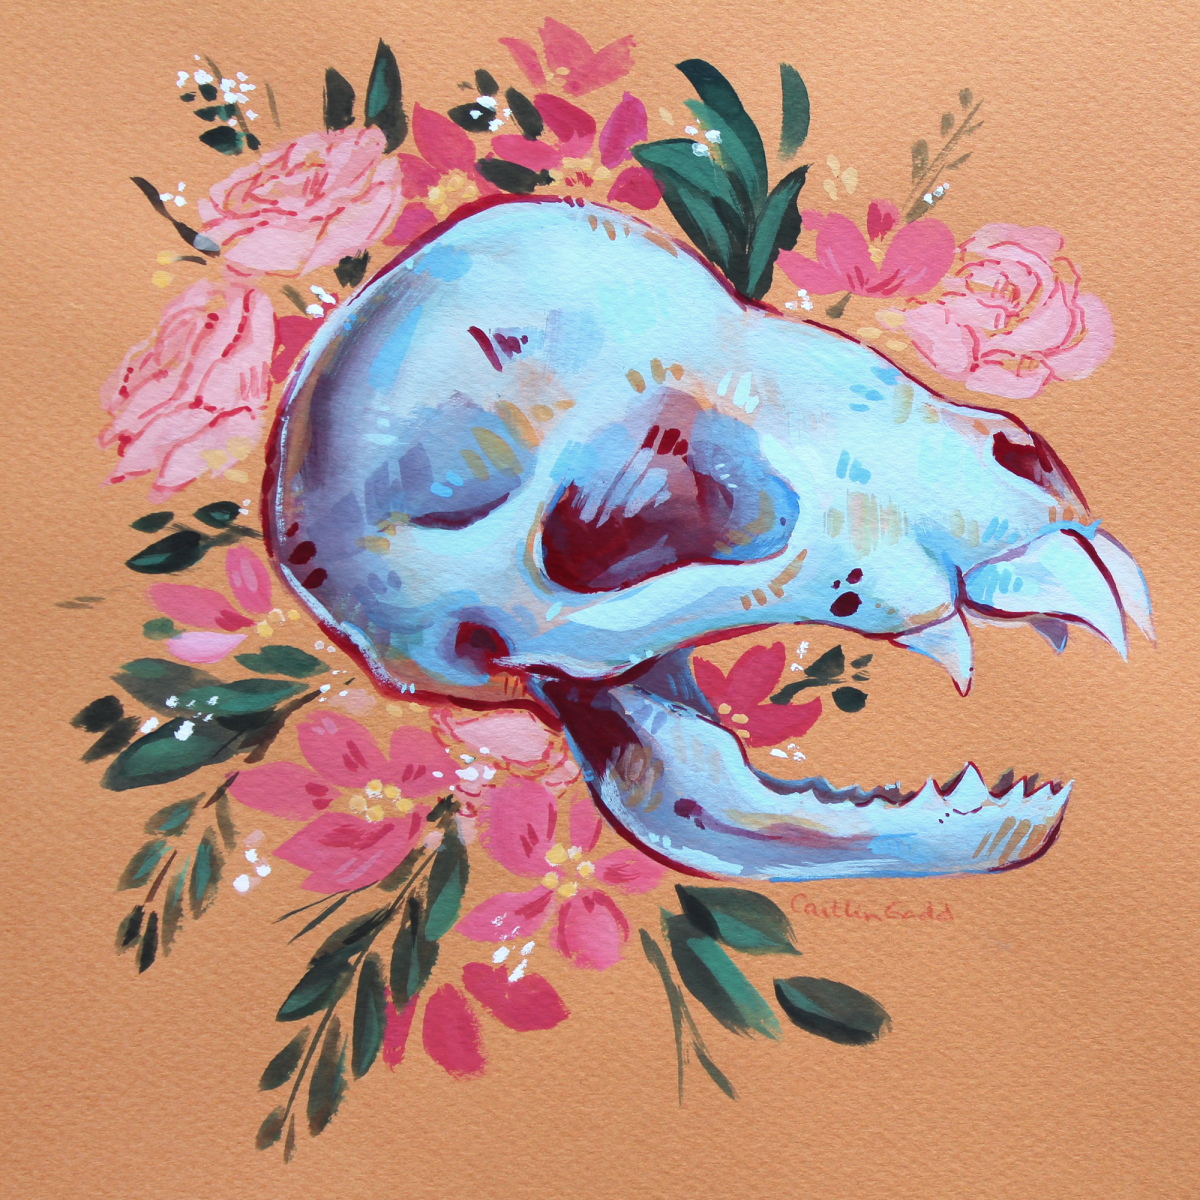 original gouache painting of a vampire bat skull with flowers on warm-toned paper